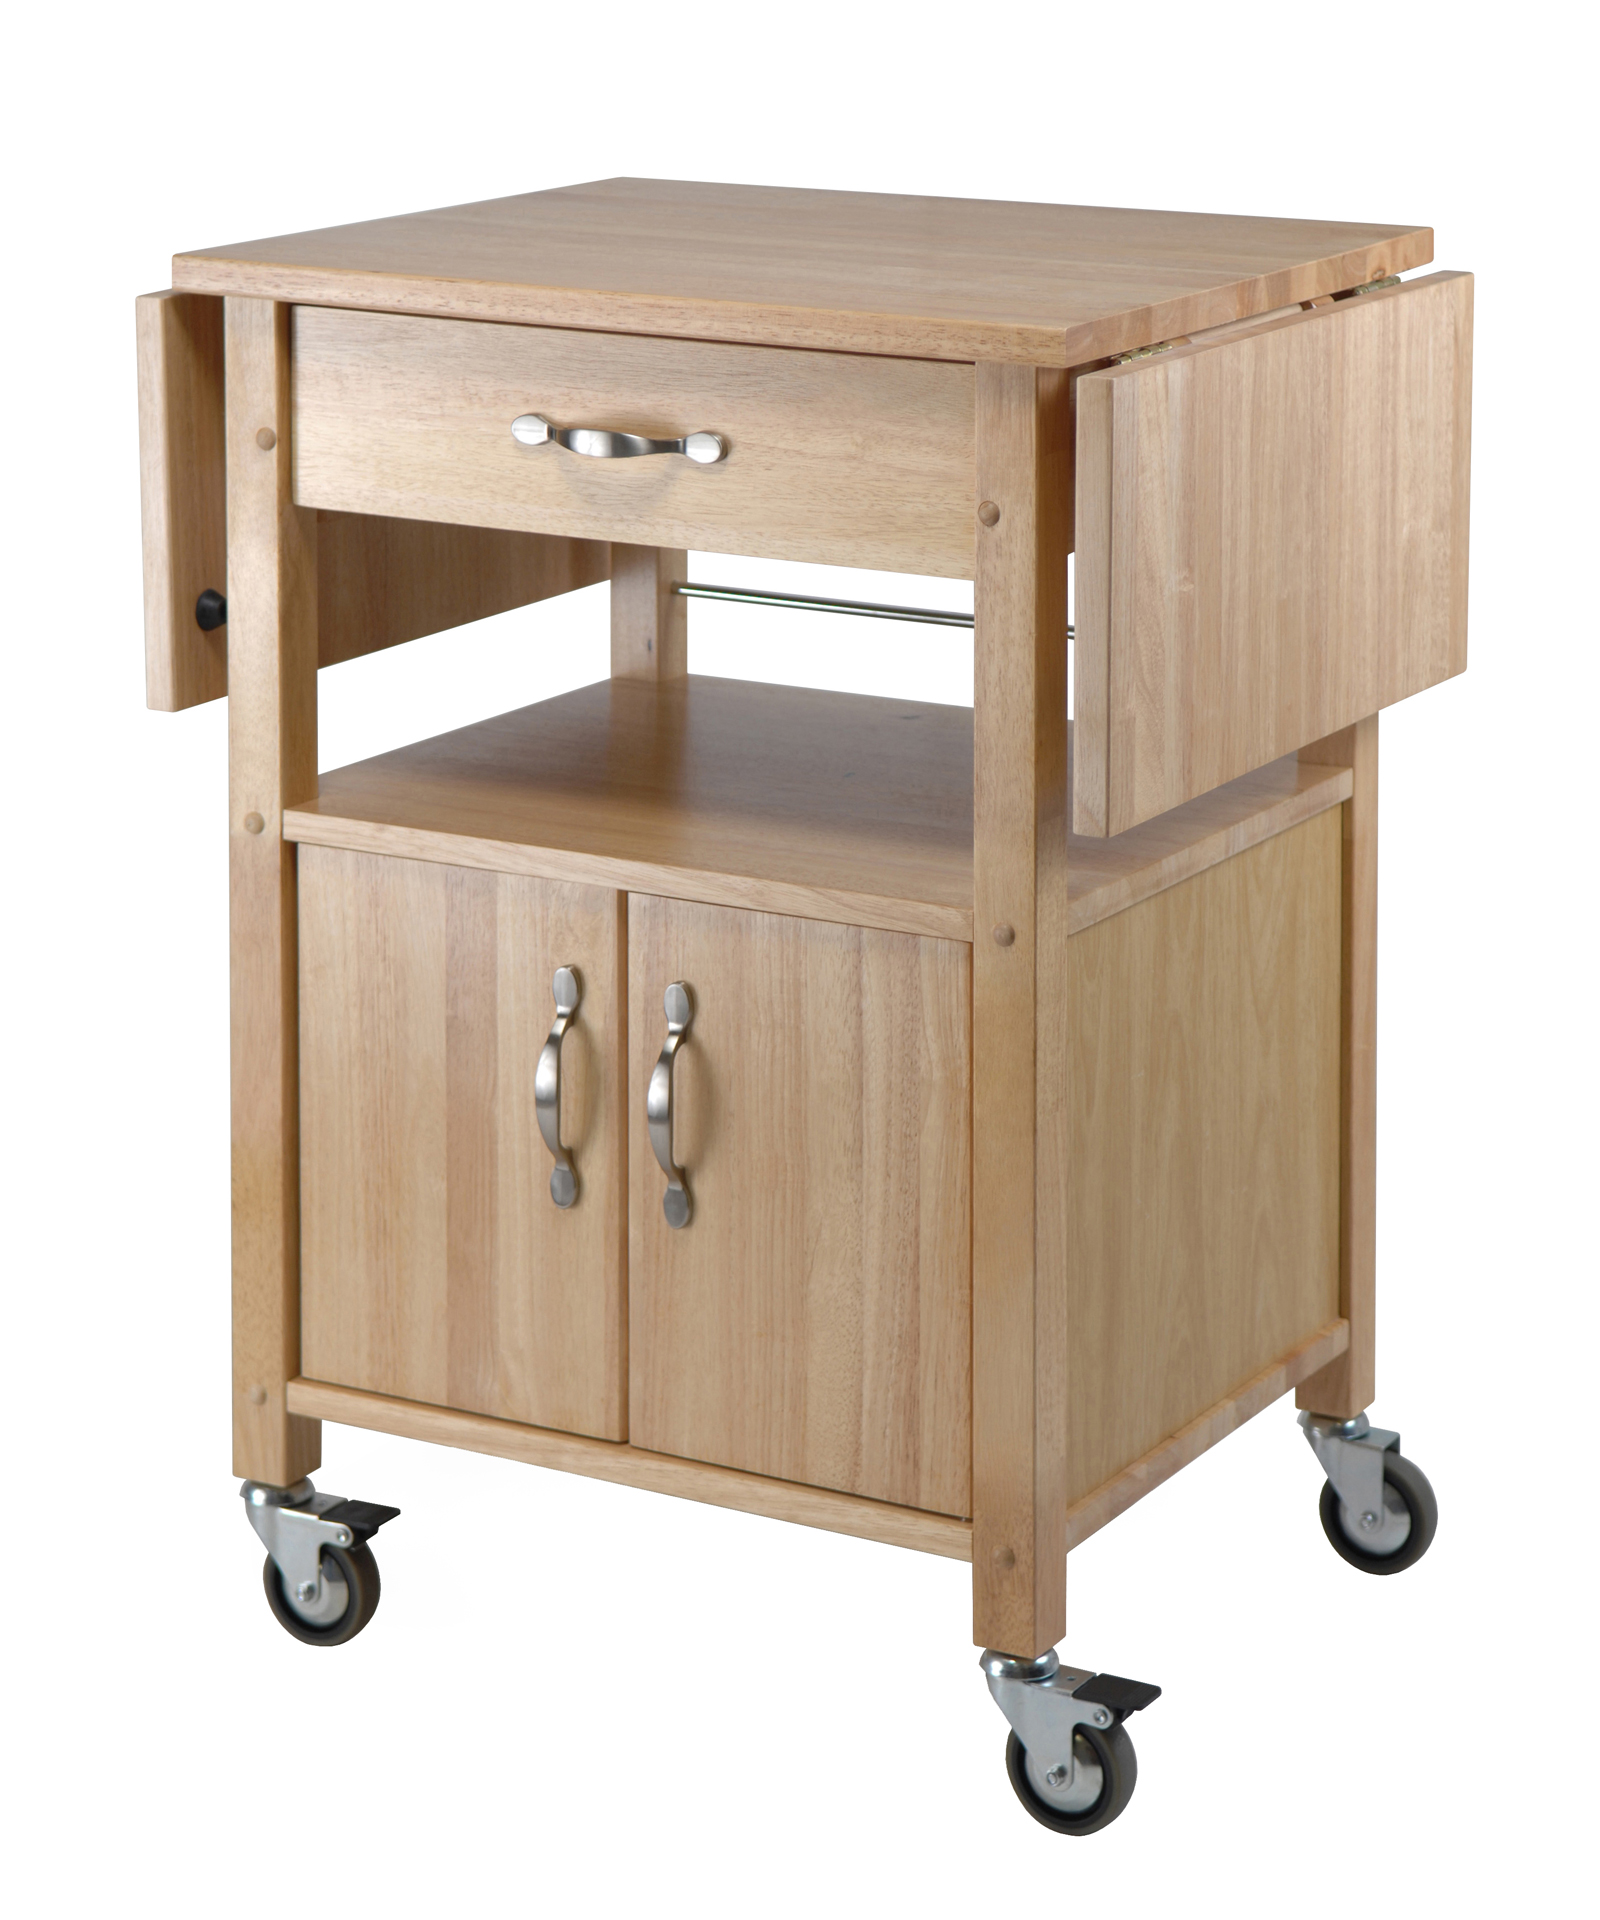 Winsome Kitchen Cart, Double Drop Leaf, Cabinet with shelf at Sears.com